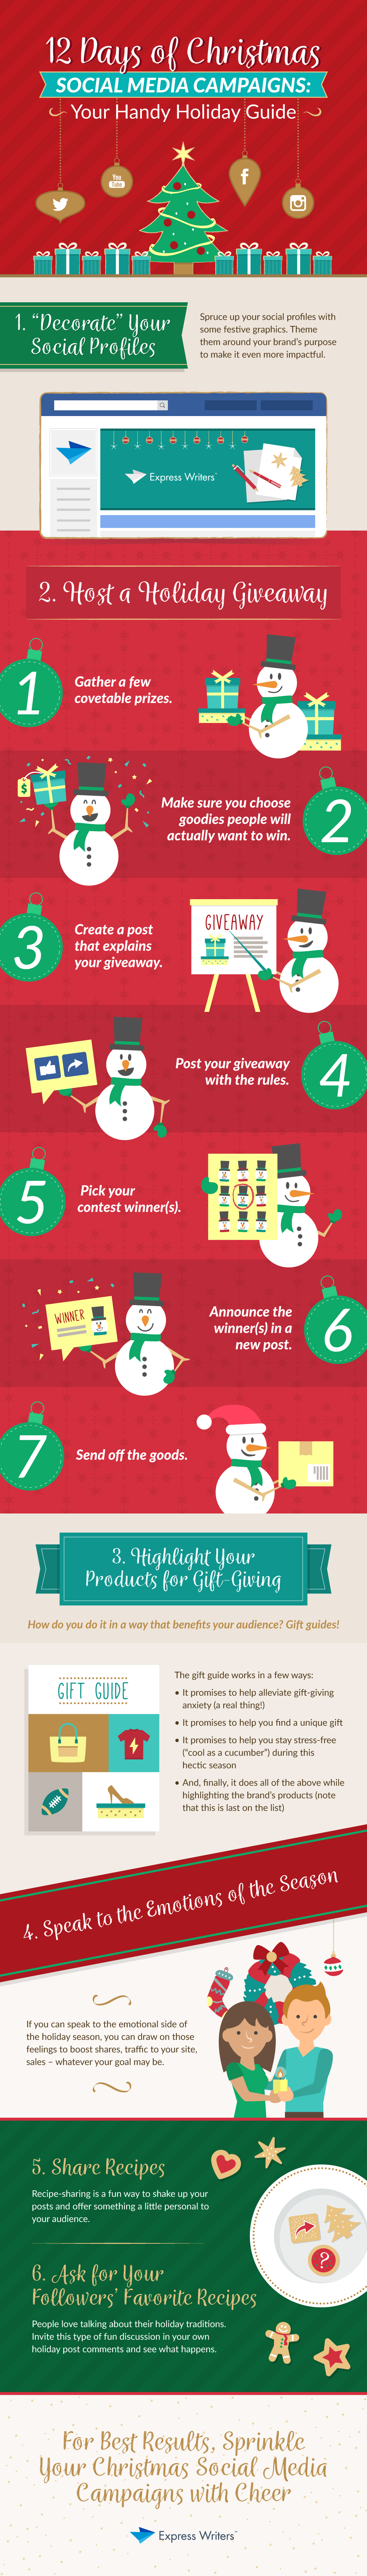 Days To Christmas.A Handy Holiday Content Guide To Christmas Social Media